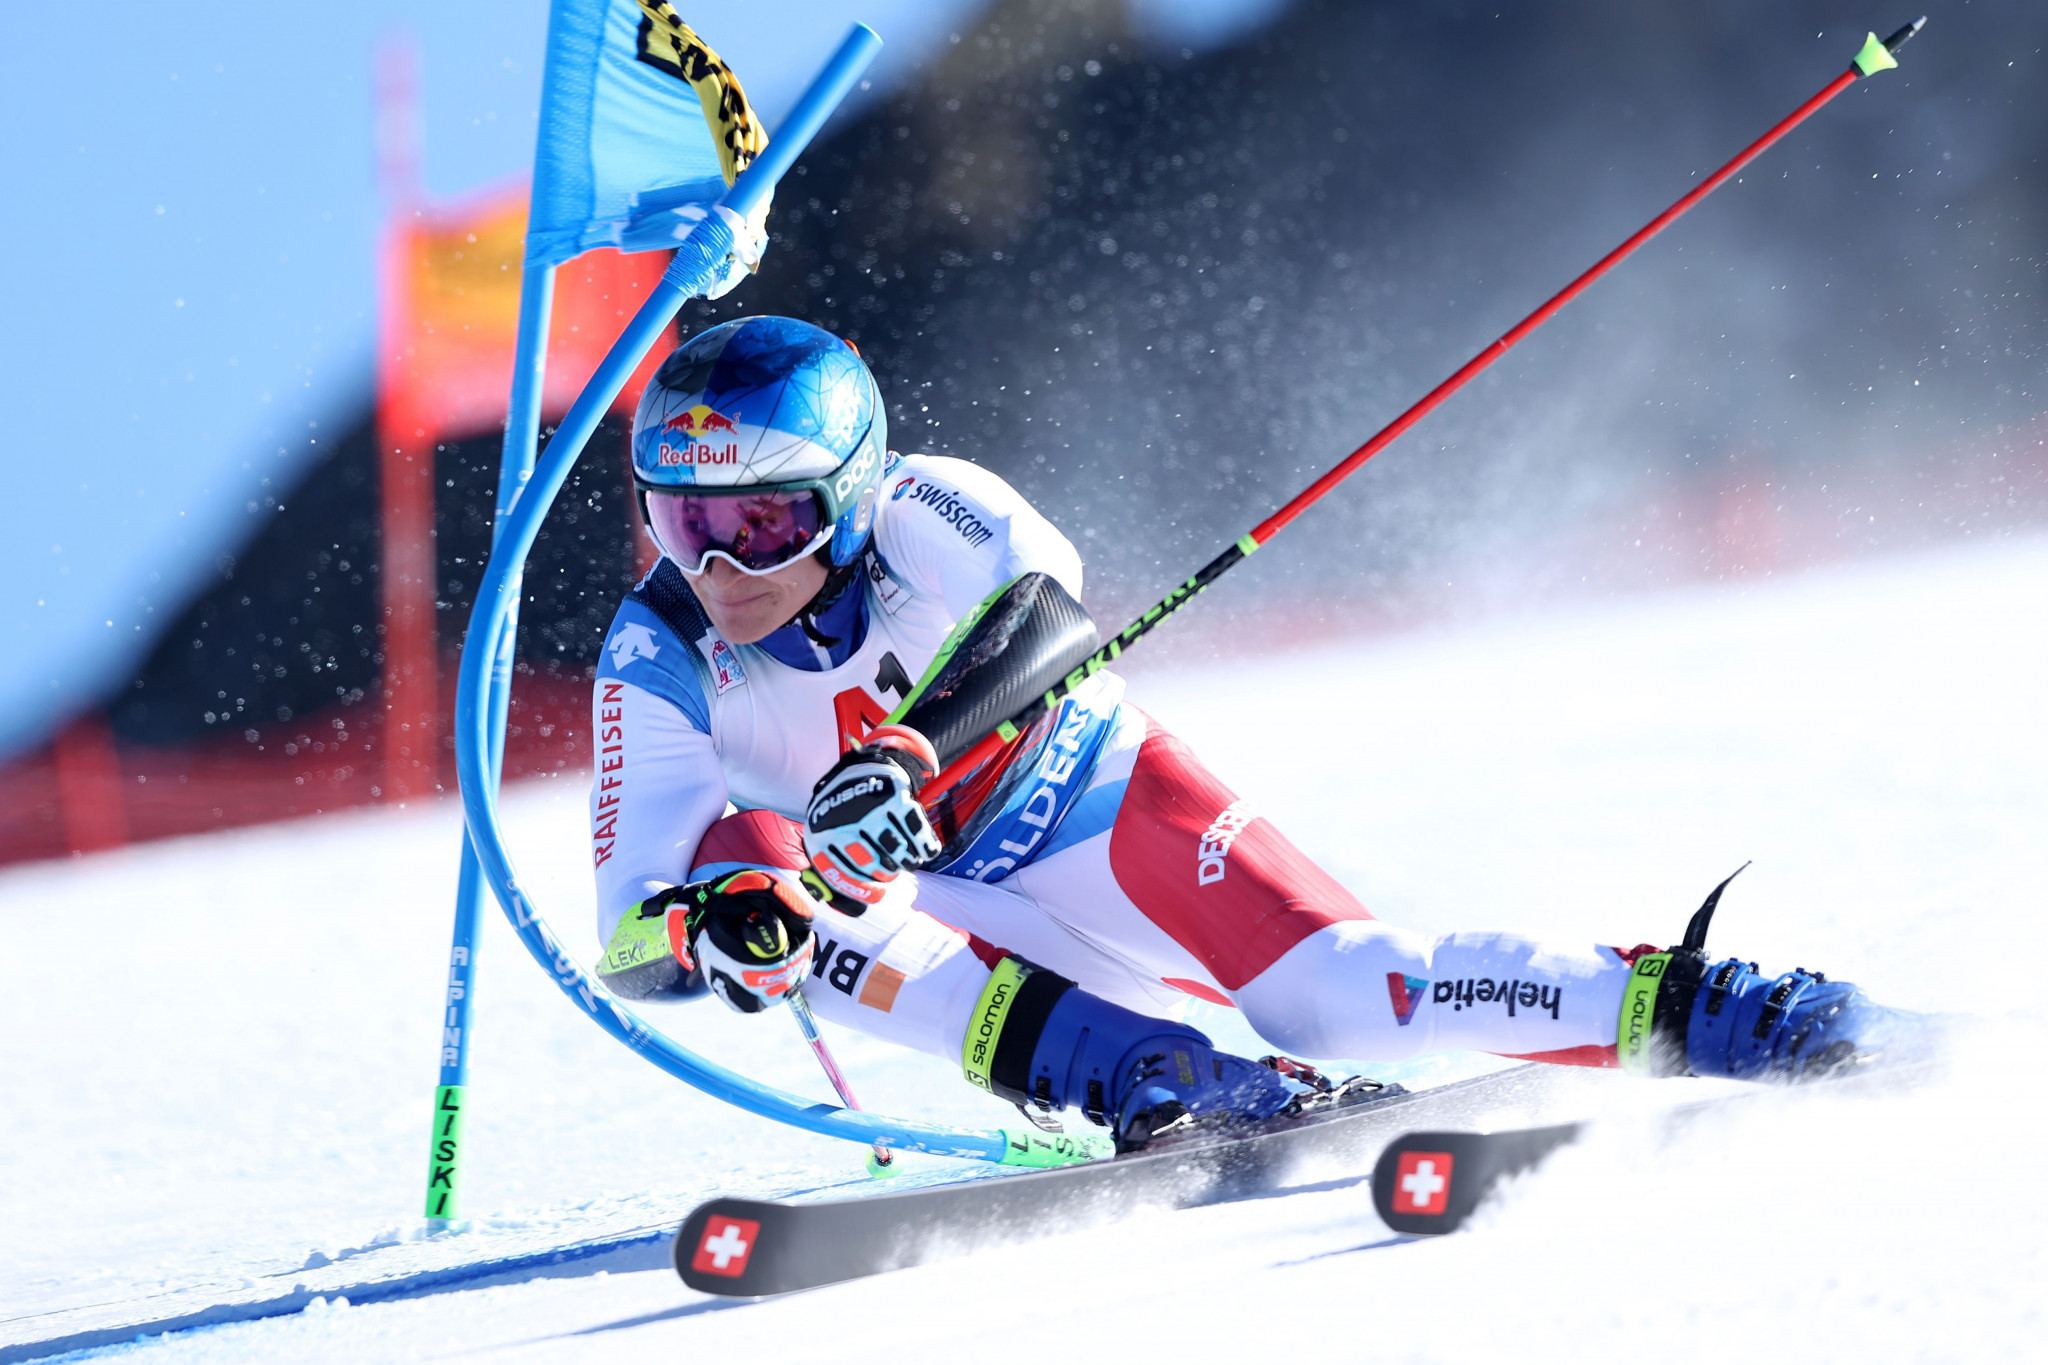 Odermatt edges out home favourite Leitinger to win FIS Alpine Ski World Cup opener